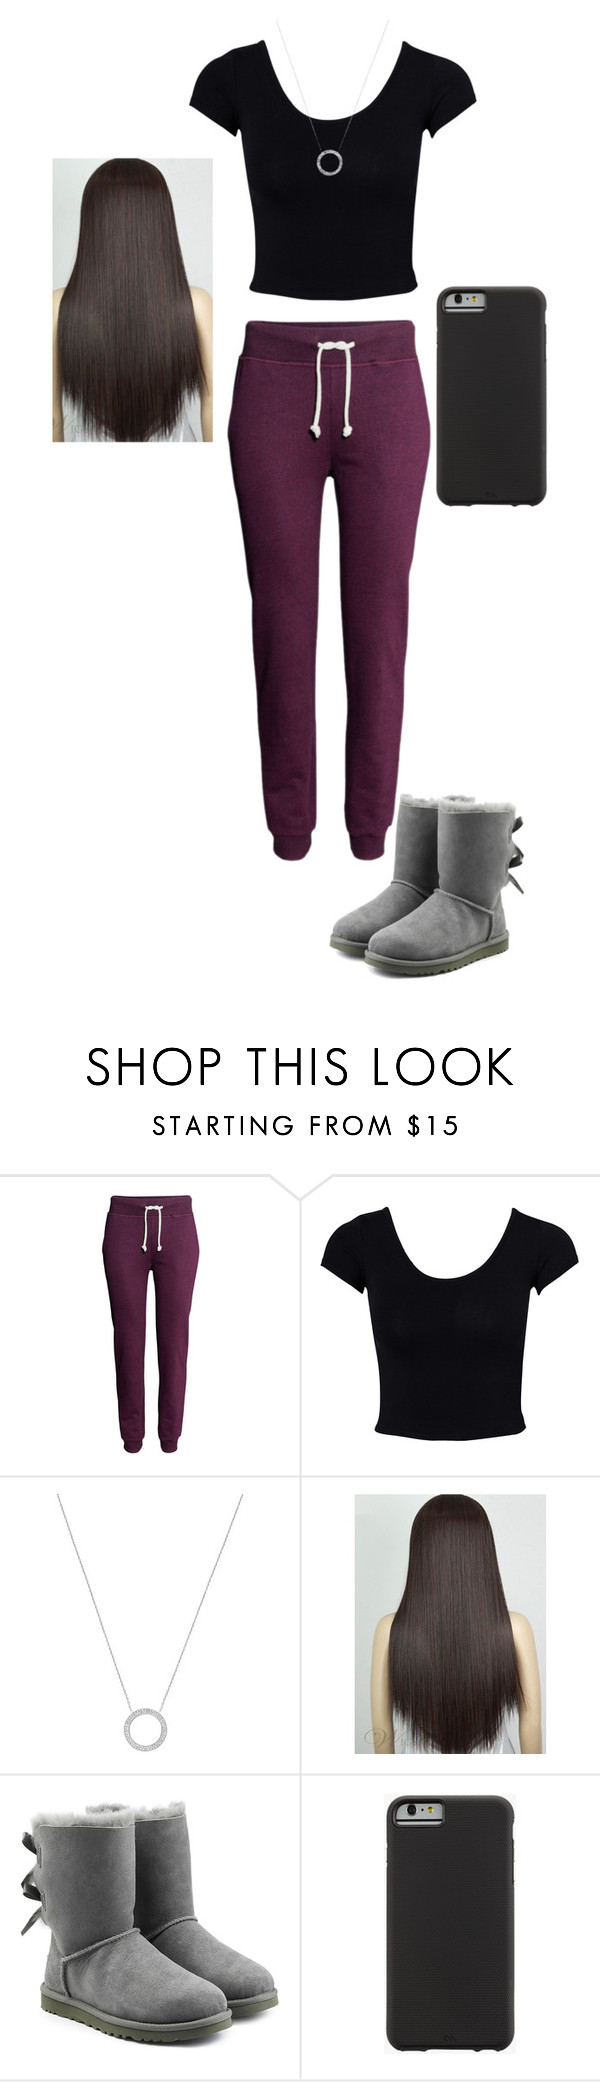 """""""just an outfit"""" by mell-rosee ❤ liked on Polyvore featuring H&M, Estradeur, Michael Kors, UGG Australia and Case-Mate"""